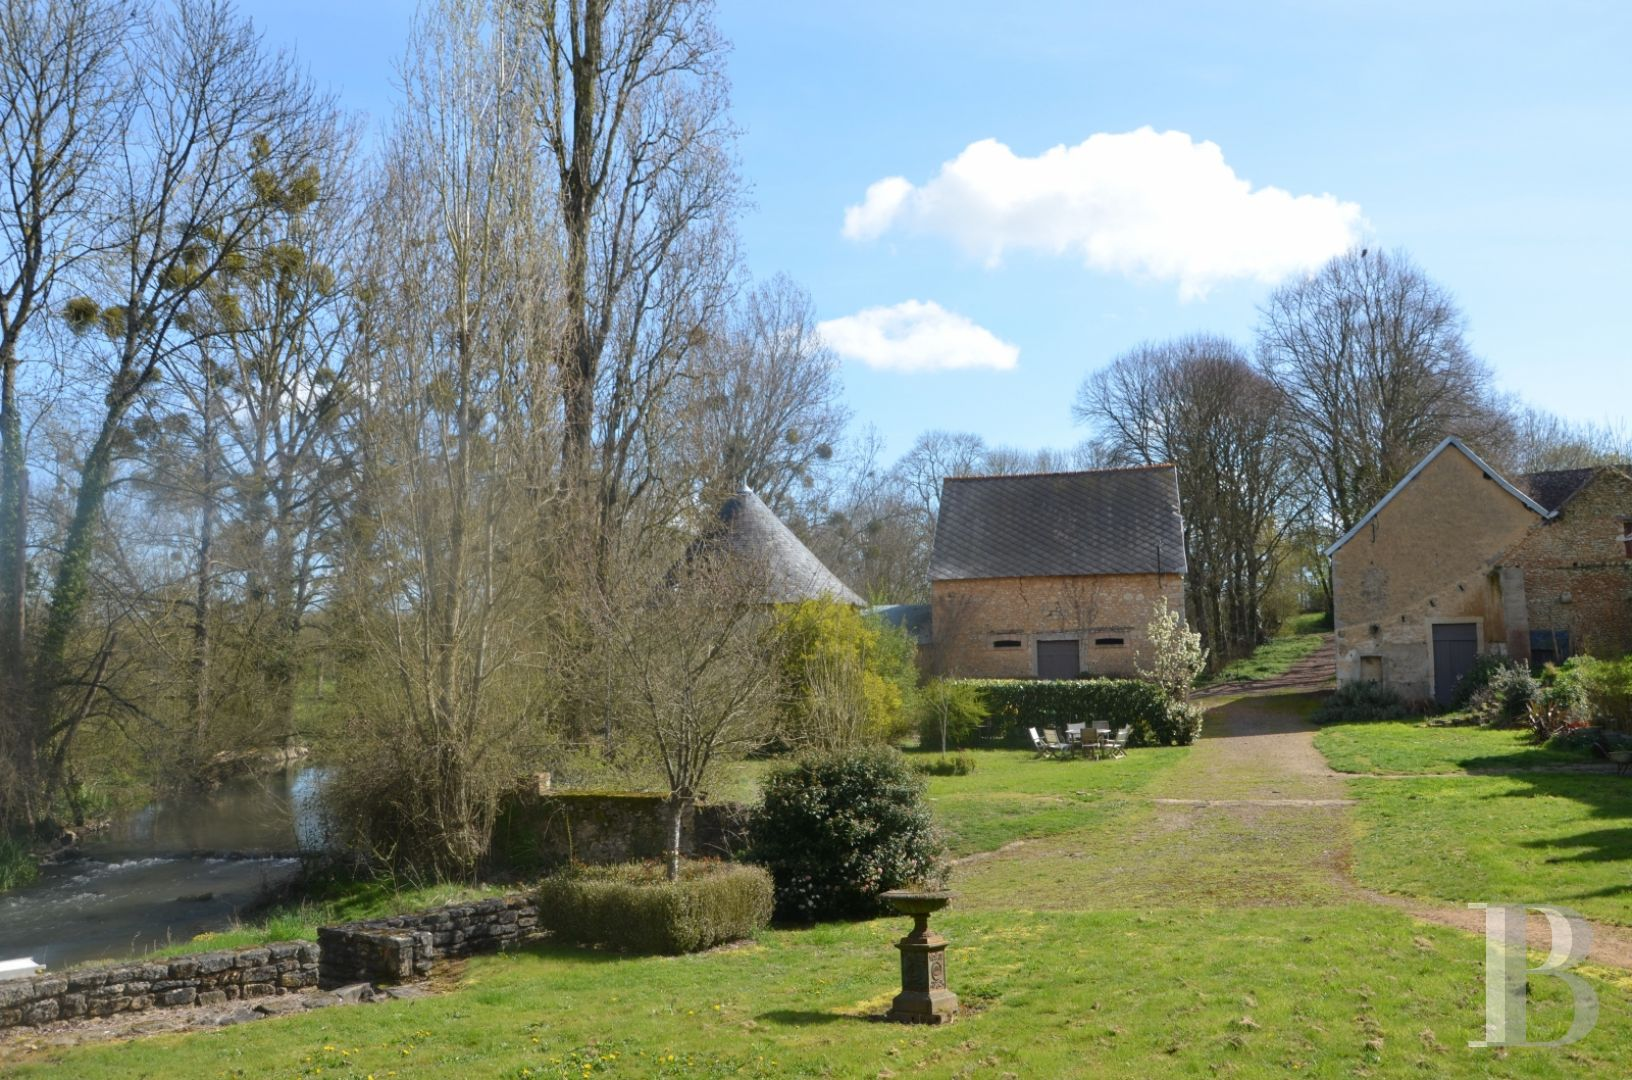 France mansions for sale pays de loire manors equestrian - 13 zoom